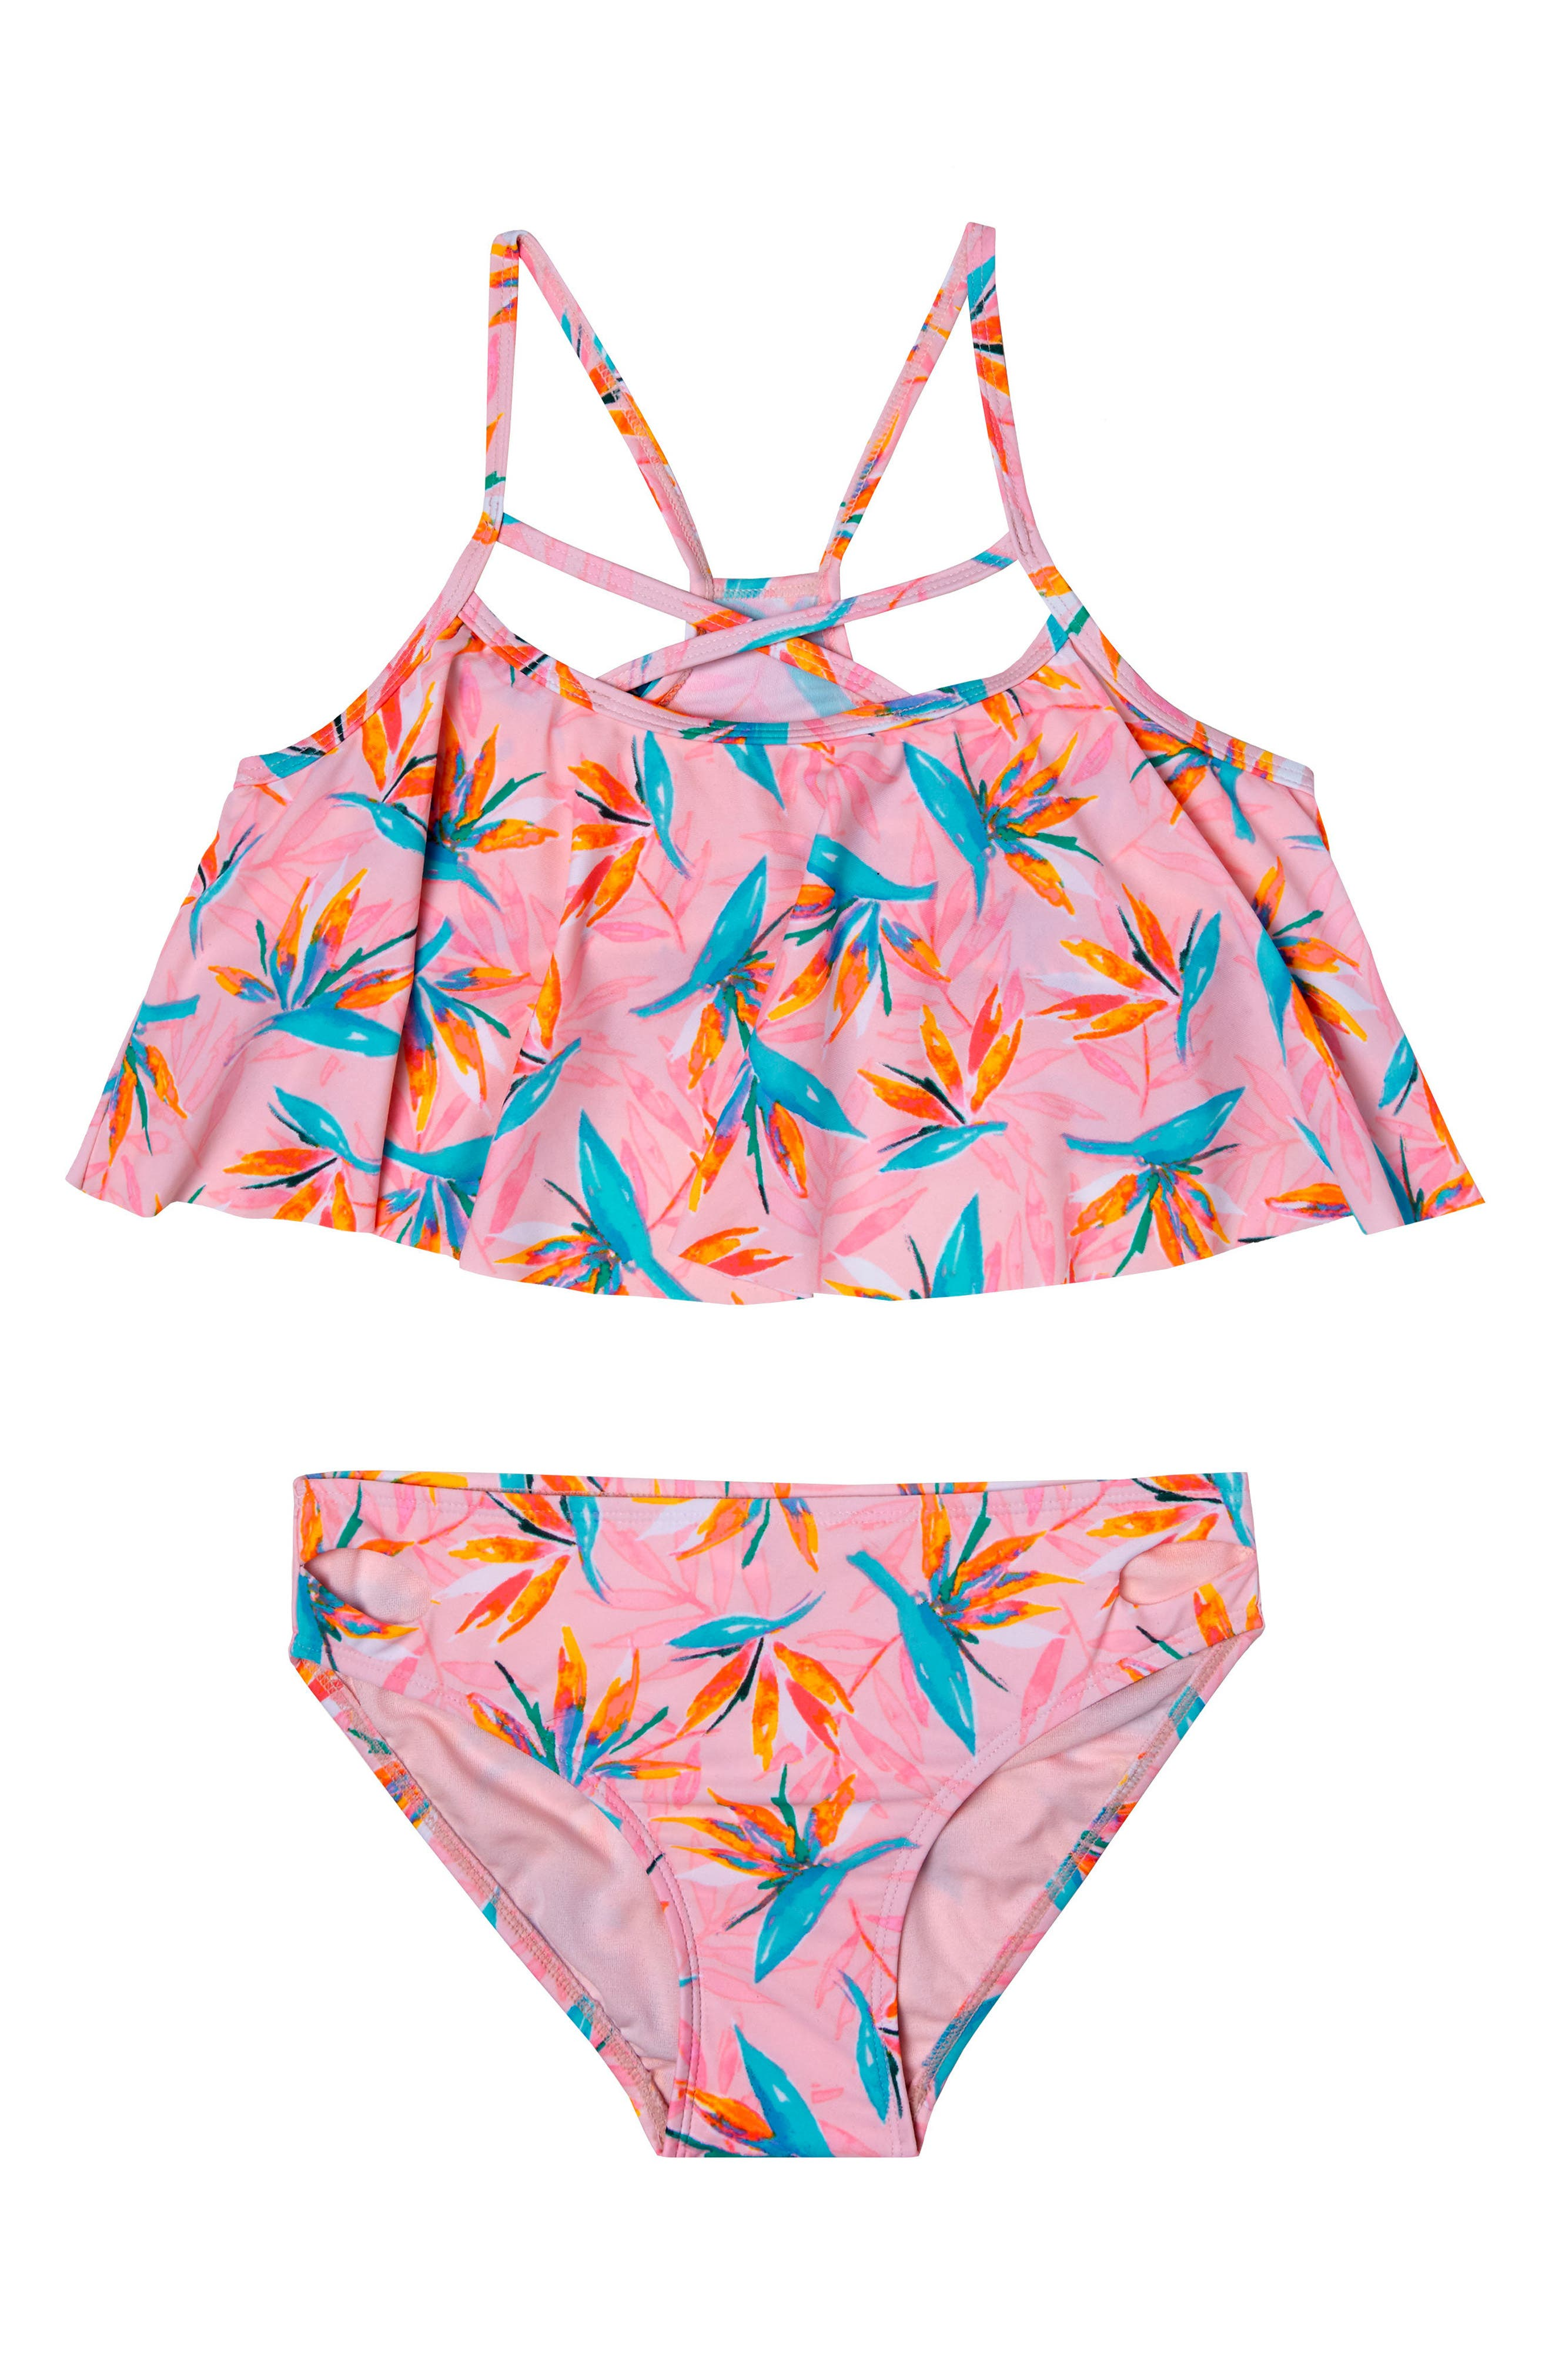 Paradise Haven Two-Piece Swimsuit,                             Main thumbnail 1, color,                             Pink